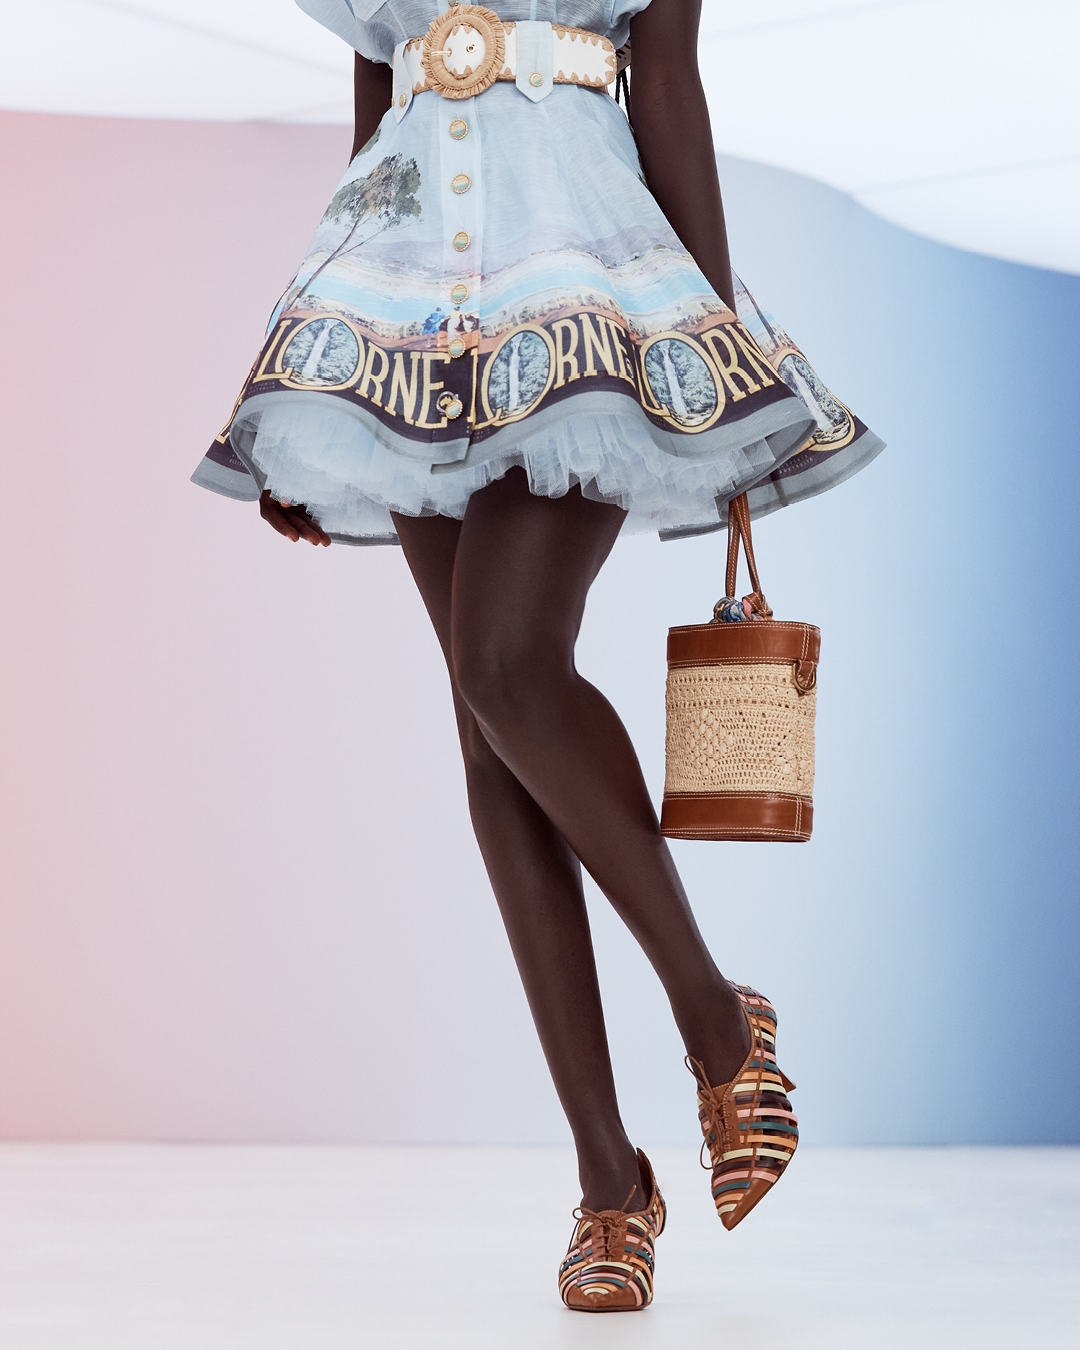 IN THE DETAIL: LOOK 25 RESORT 2022, THE POSTCARD